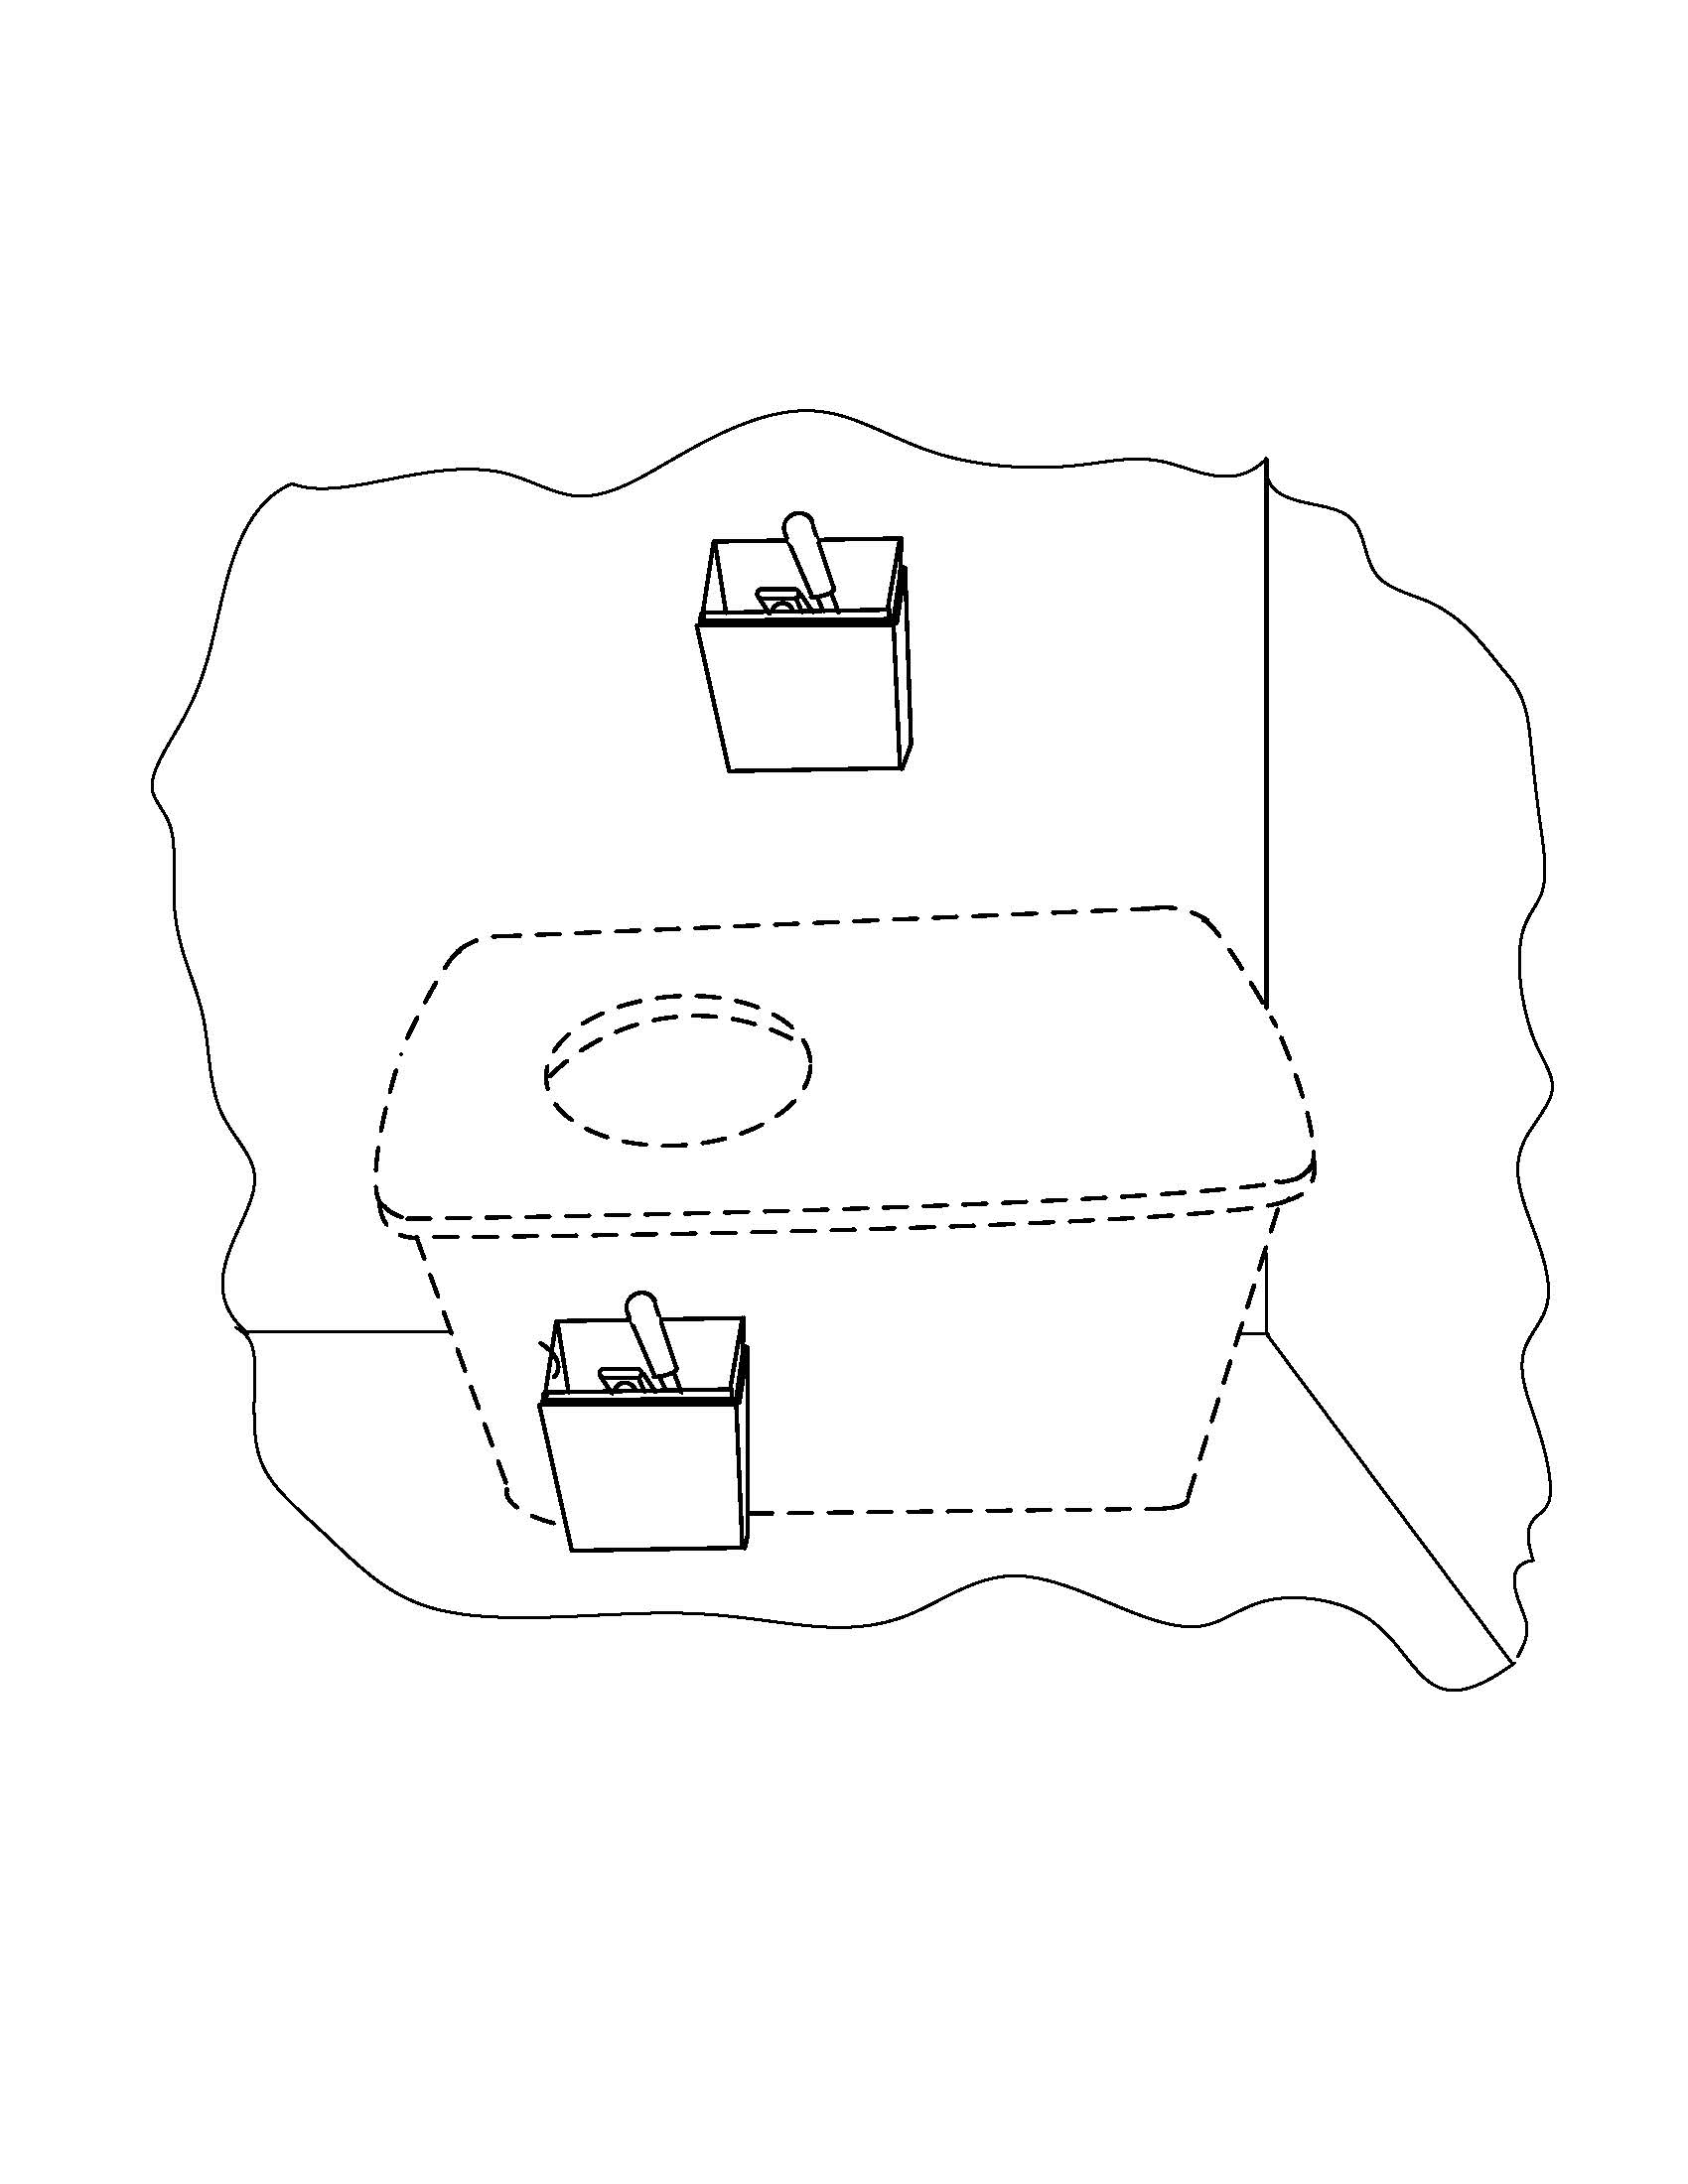 177 Scoop Holder For Holding A Scoop Device Adapted To Scoop Cat Litter From A Cat Litter Box